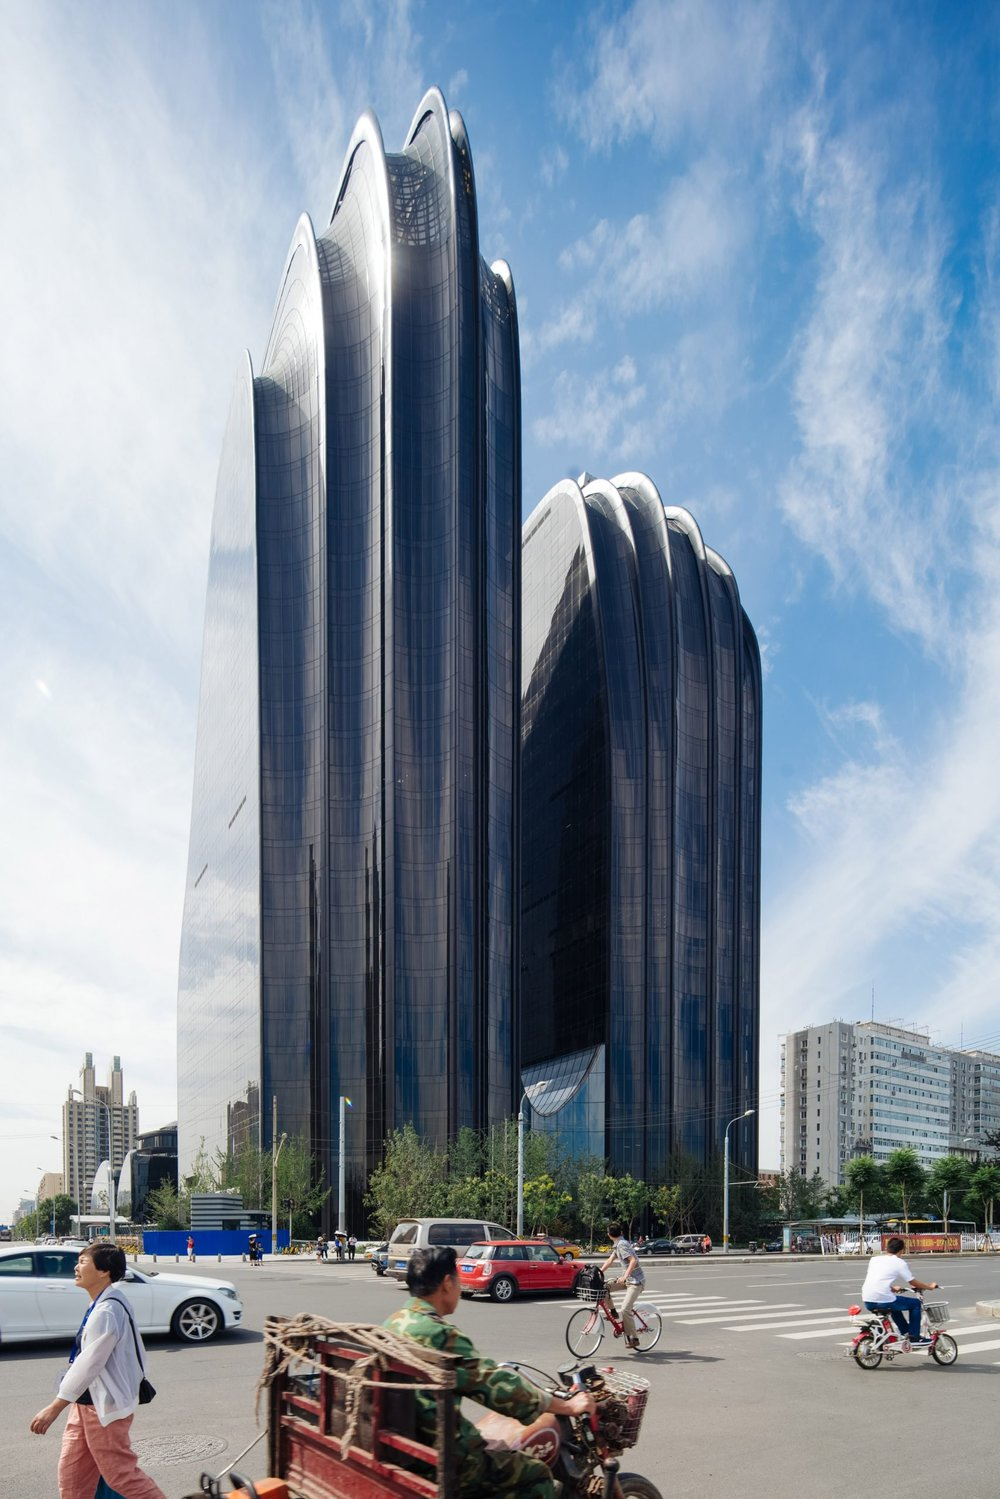 chaoyang-plaza-mad-architects-khoo-guo-jie-architecture-photography-china_dezeen_2364_col_6-1704x2555.jpg